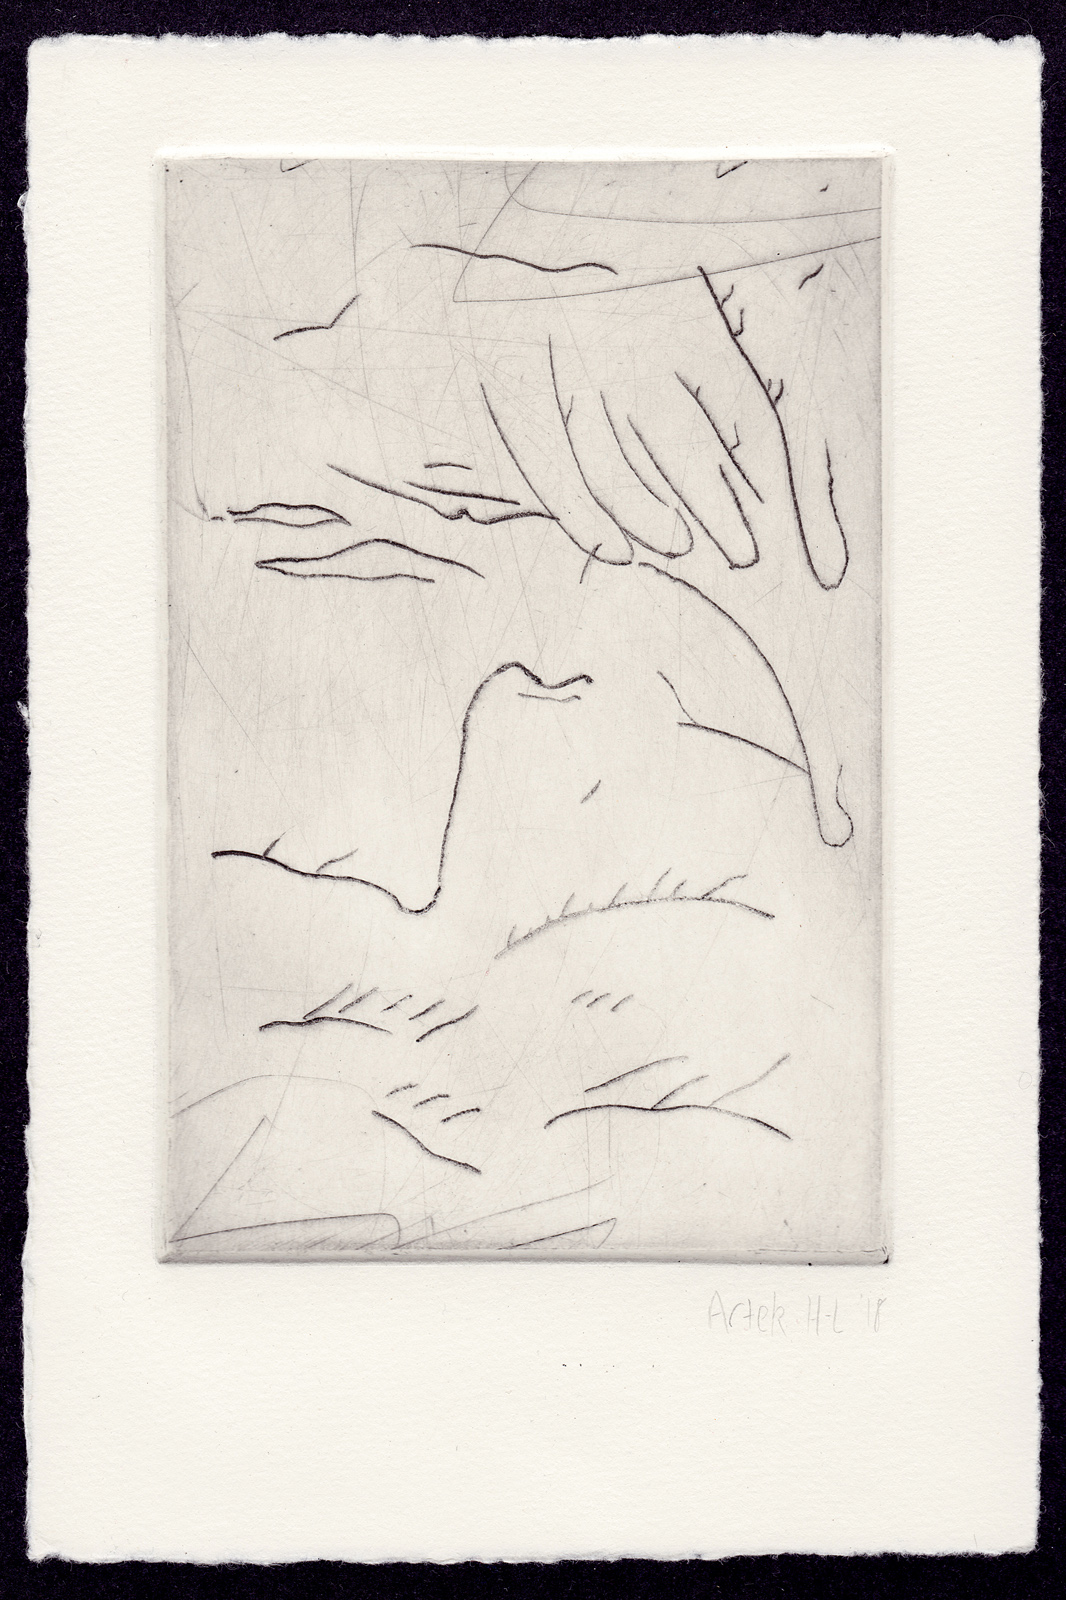 An etching print, state 10